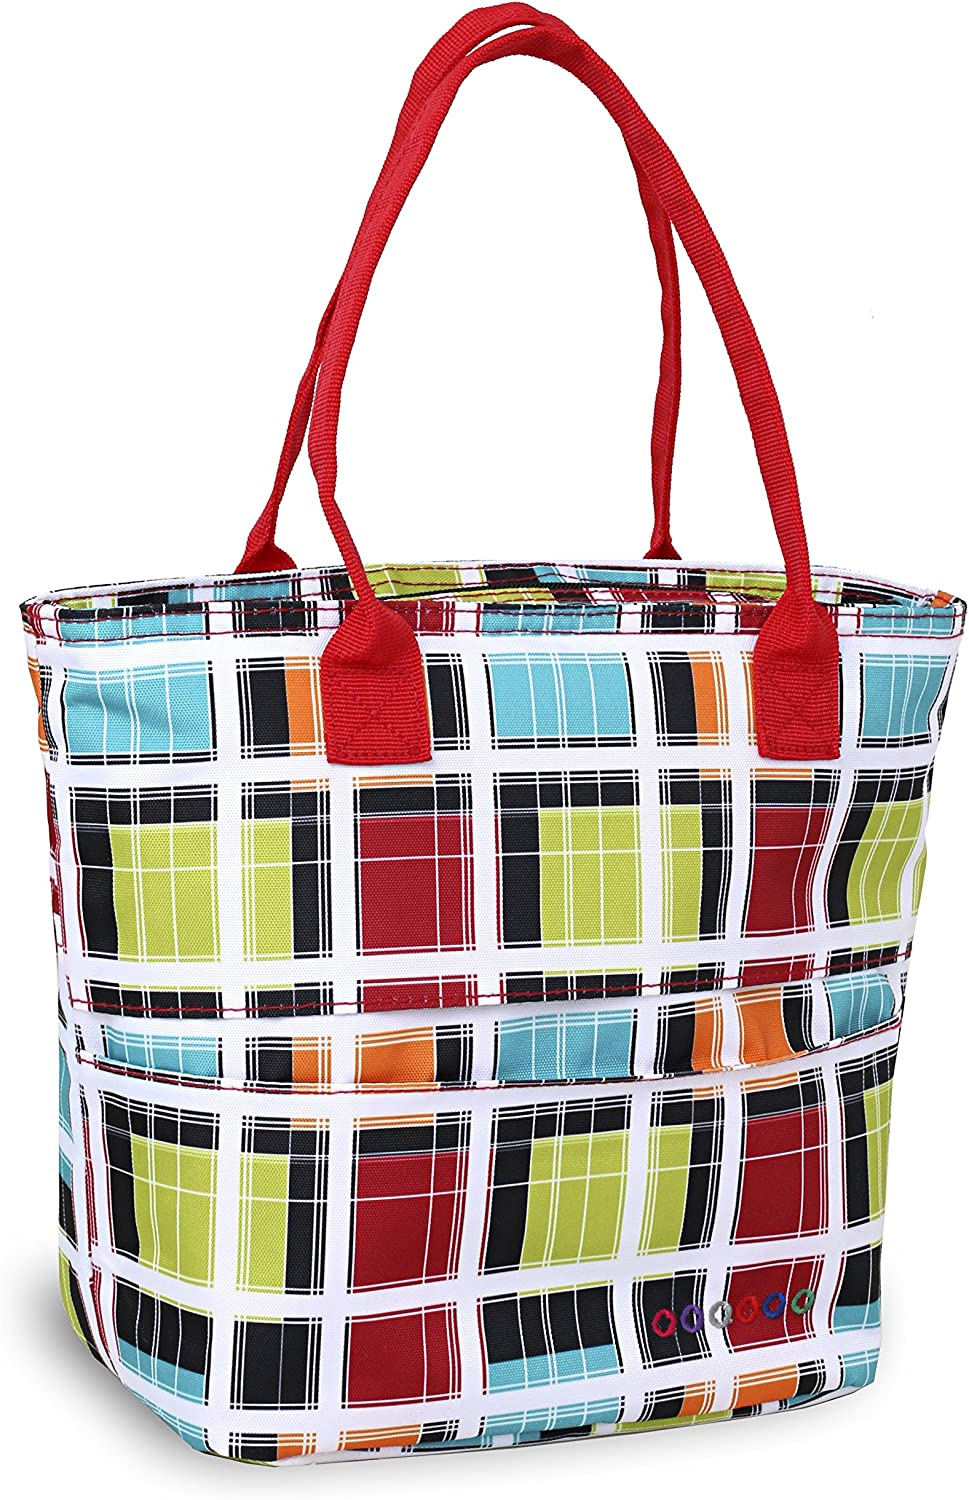 J World New York Lola Tote Bag Insulated Lunch-Box, Colorstrip, One Size